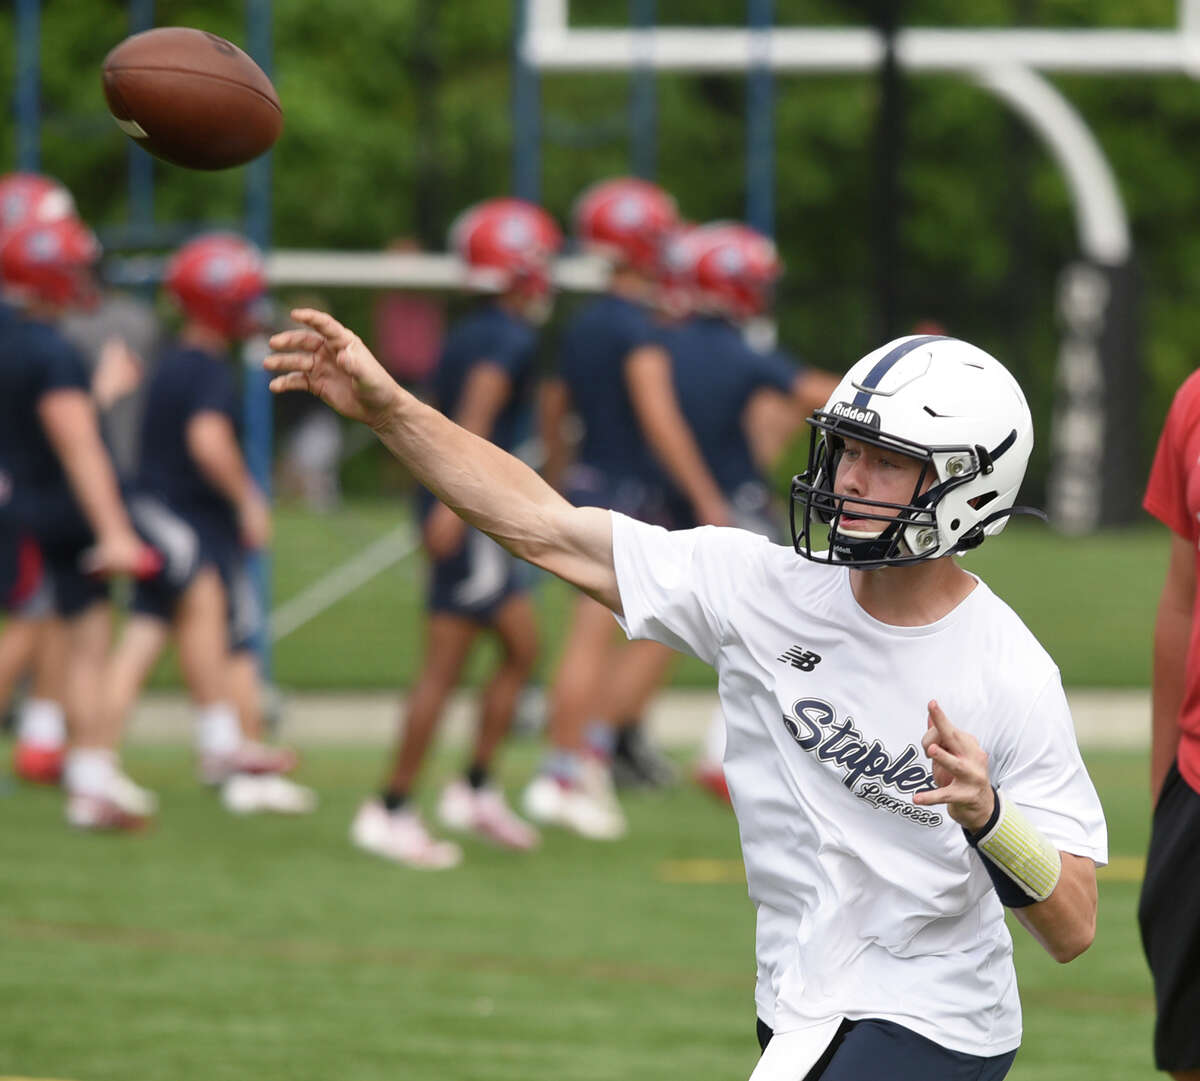 Staples' quarterback Ryan Thompson throws a pass during day two of the Grip It and Rip It football tournament in New Canaan on Saturday, July 10, 2021.